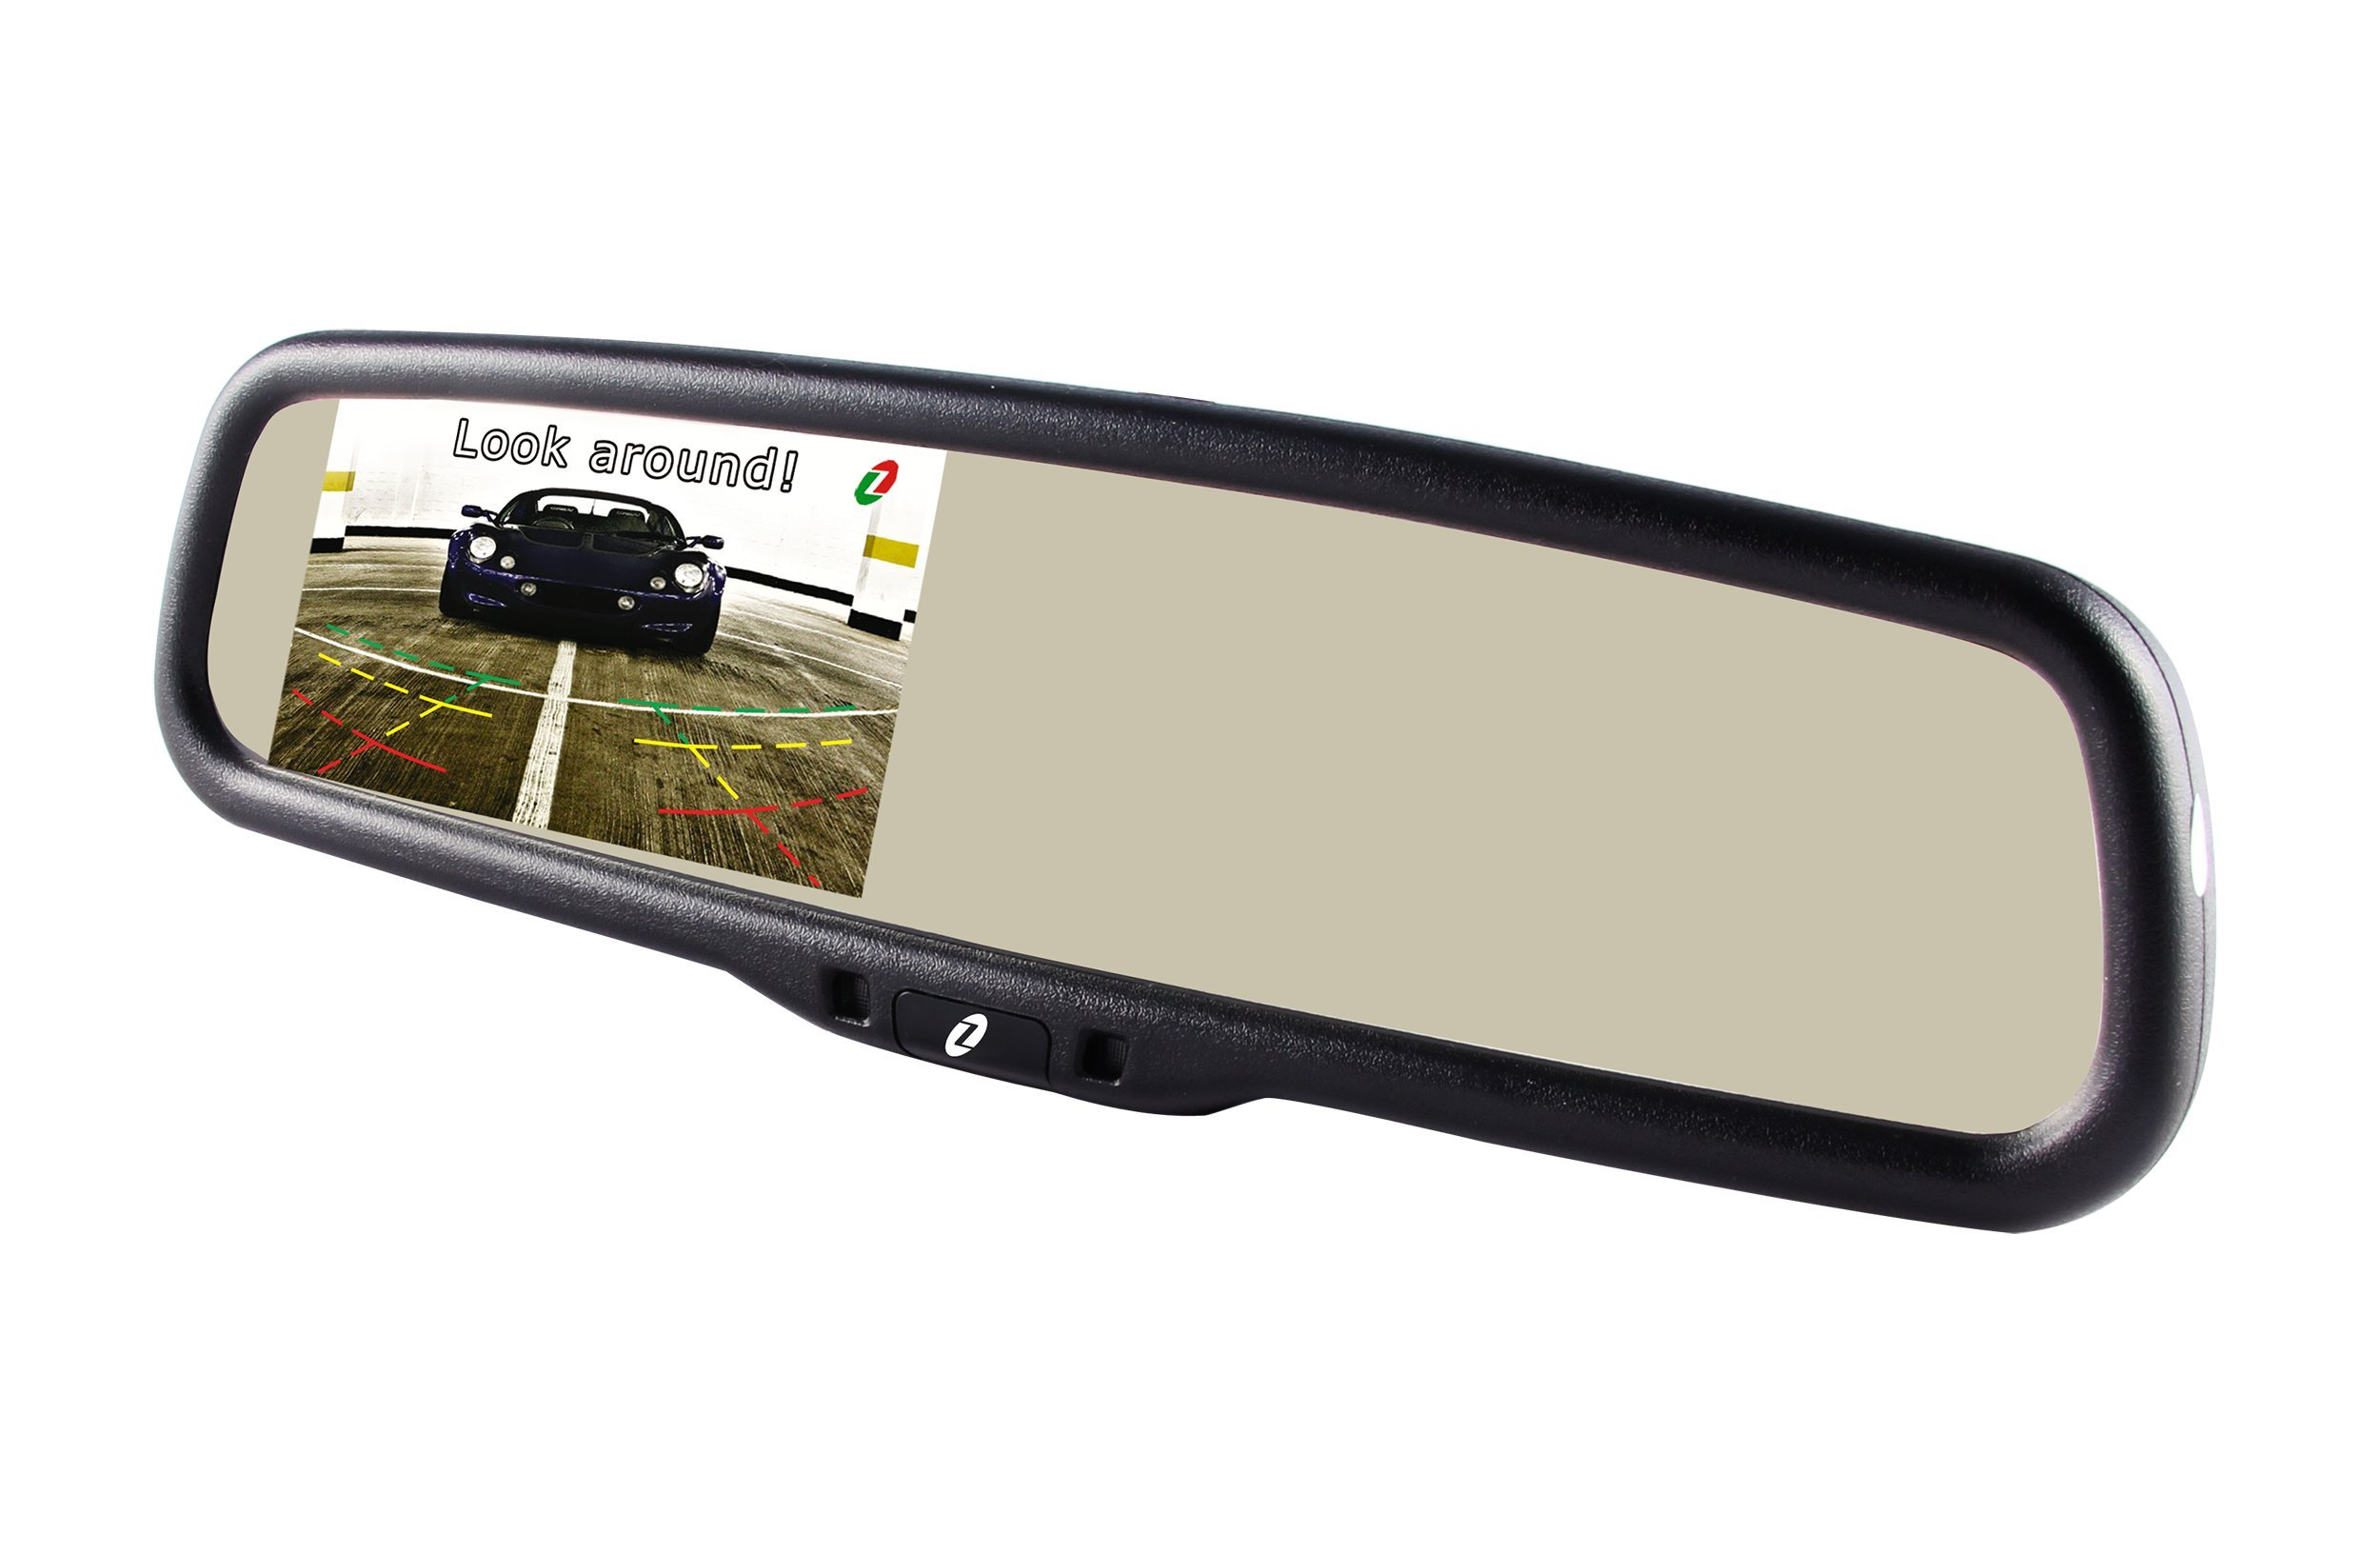 "Gazer MM705 4.3"" LCD Nissan, Citroen, Peugeot, Renault, Geely, Mercedes-Benz Original Car Auto Dimming Rearview Mirror / 1000 cd/m2 High Brightness / Integrated OEM Mount / 2 Video Inputs / Brightness Adjustment, Display Turning On-Off"